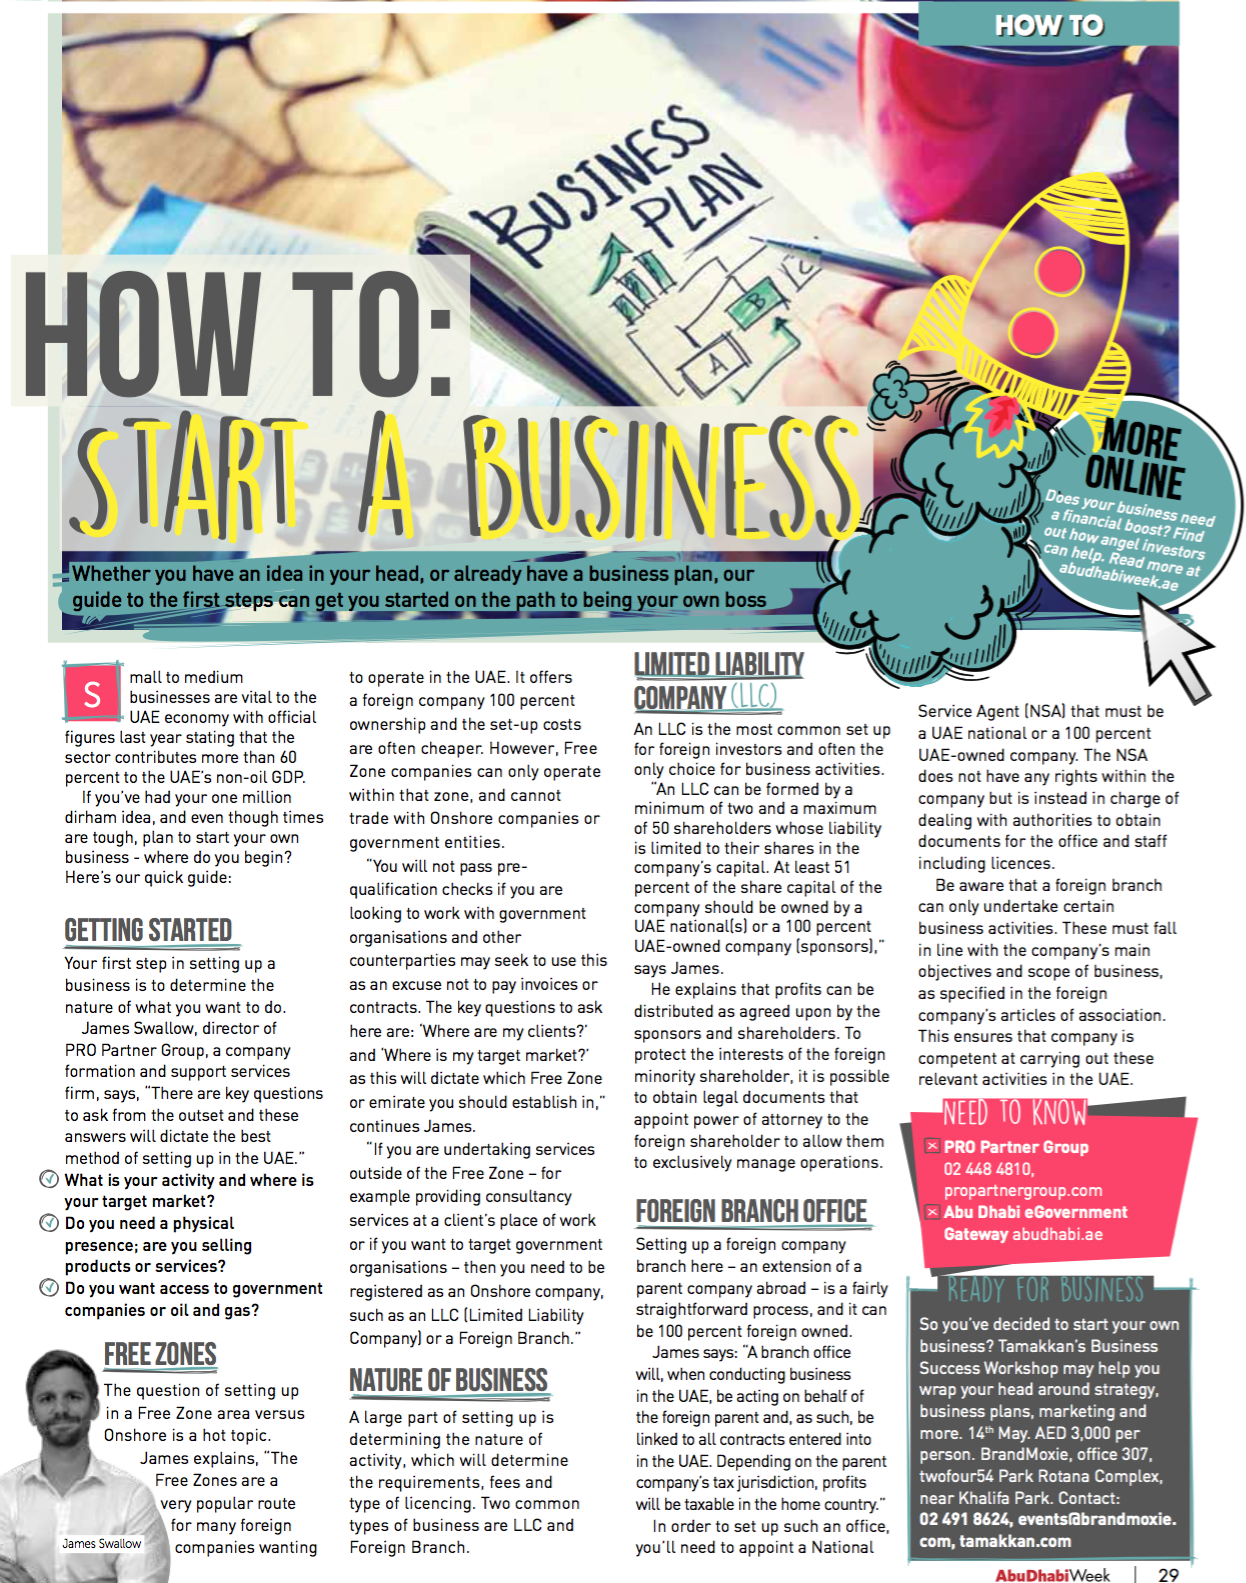 how to start a business in Abu dhabi 2016